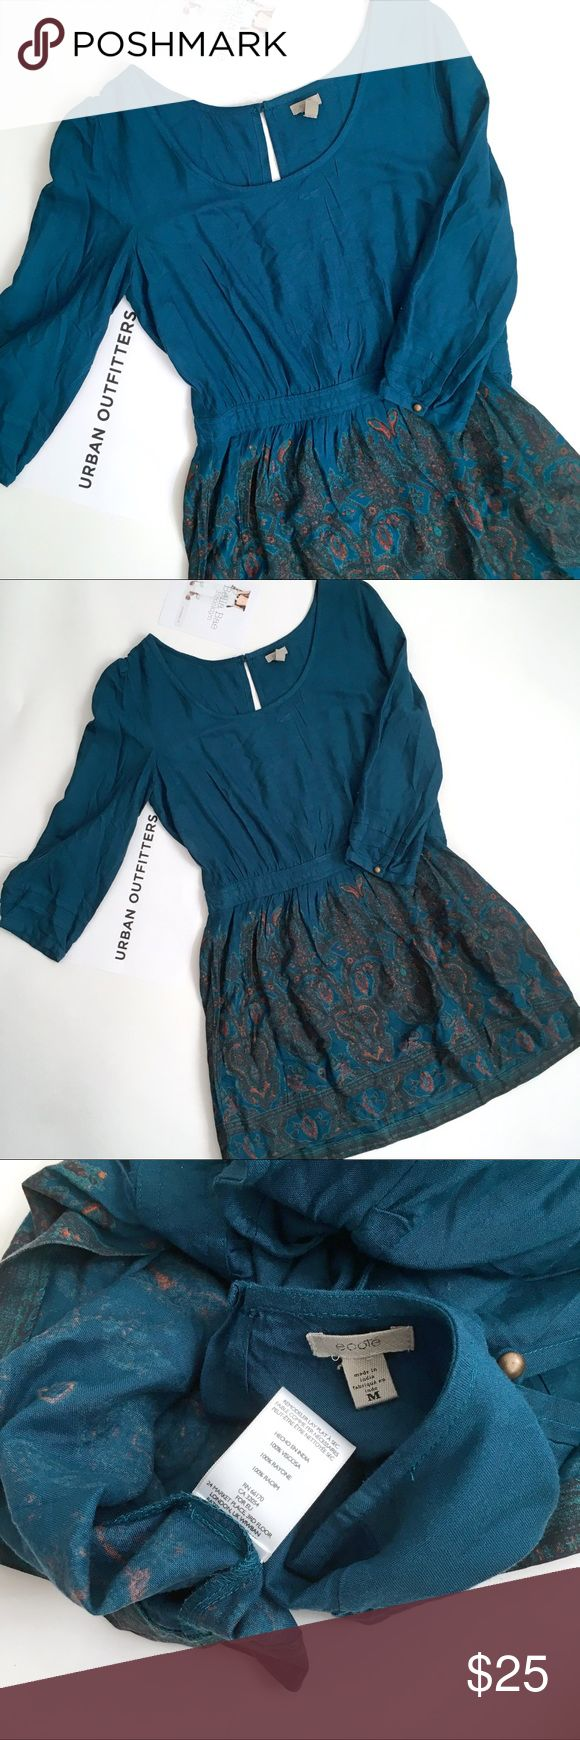 UO Ecote Teal patterned mini dress Excellent used condition urban outfitters ecote mini dress with fitted waist and full skirt. Size medium. Please see all photos. Back zipper closure. Urban Outfitters Dresses Mini